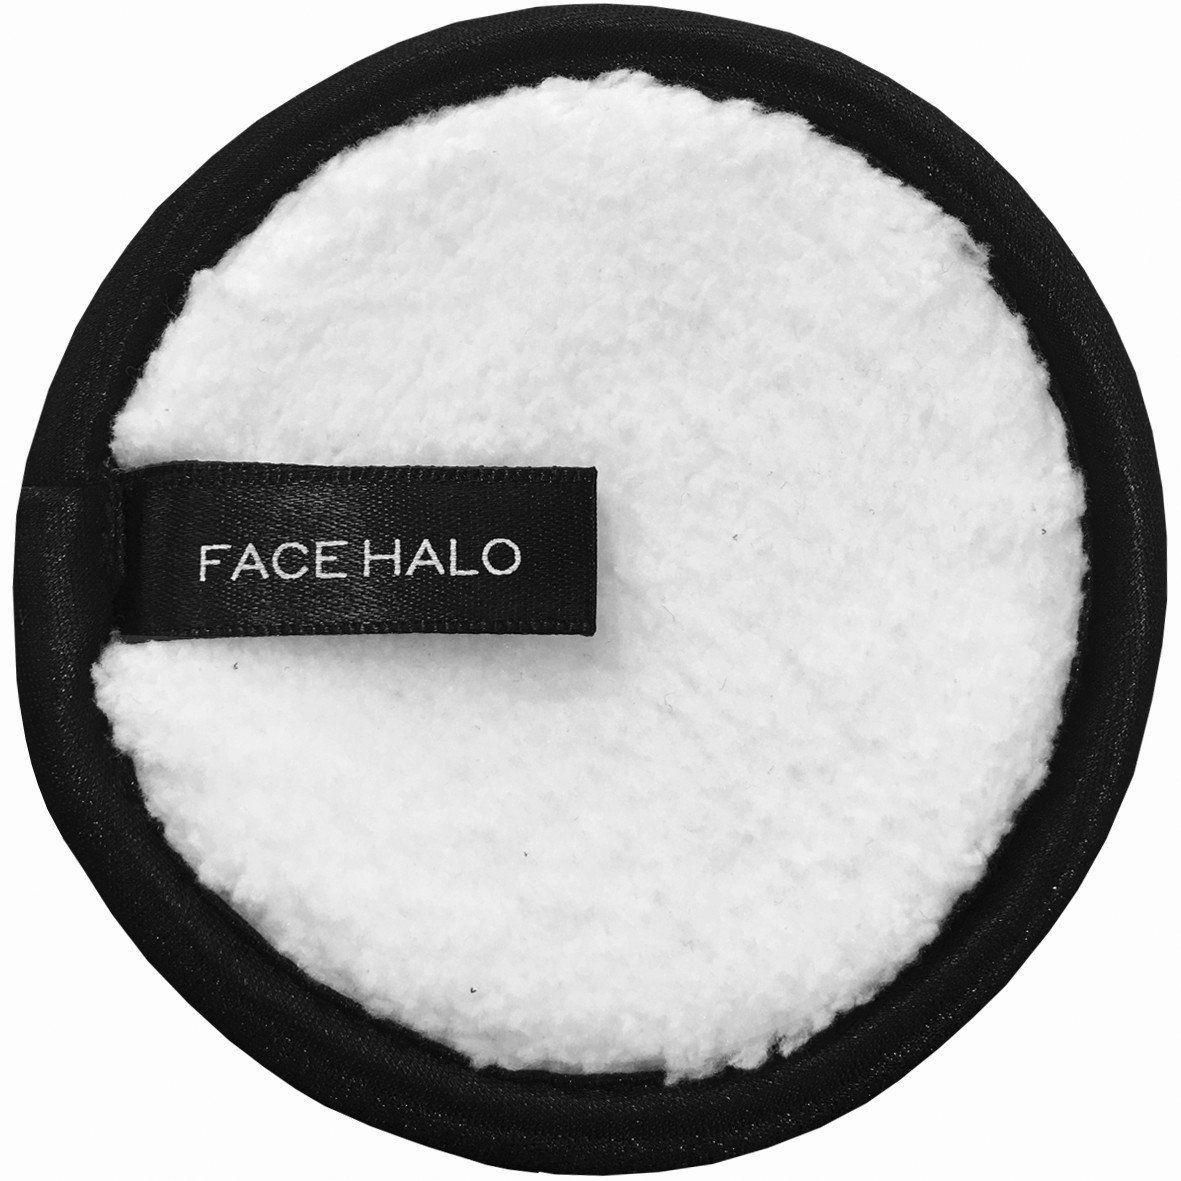 Face Halo works with either cold or warm water. The water